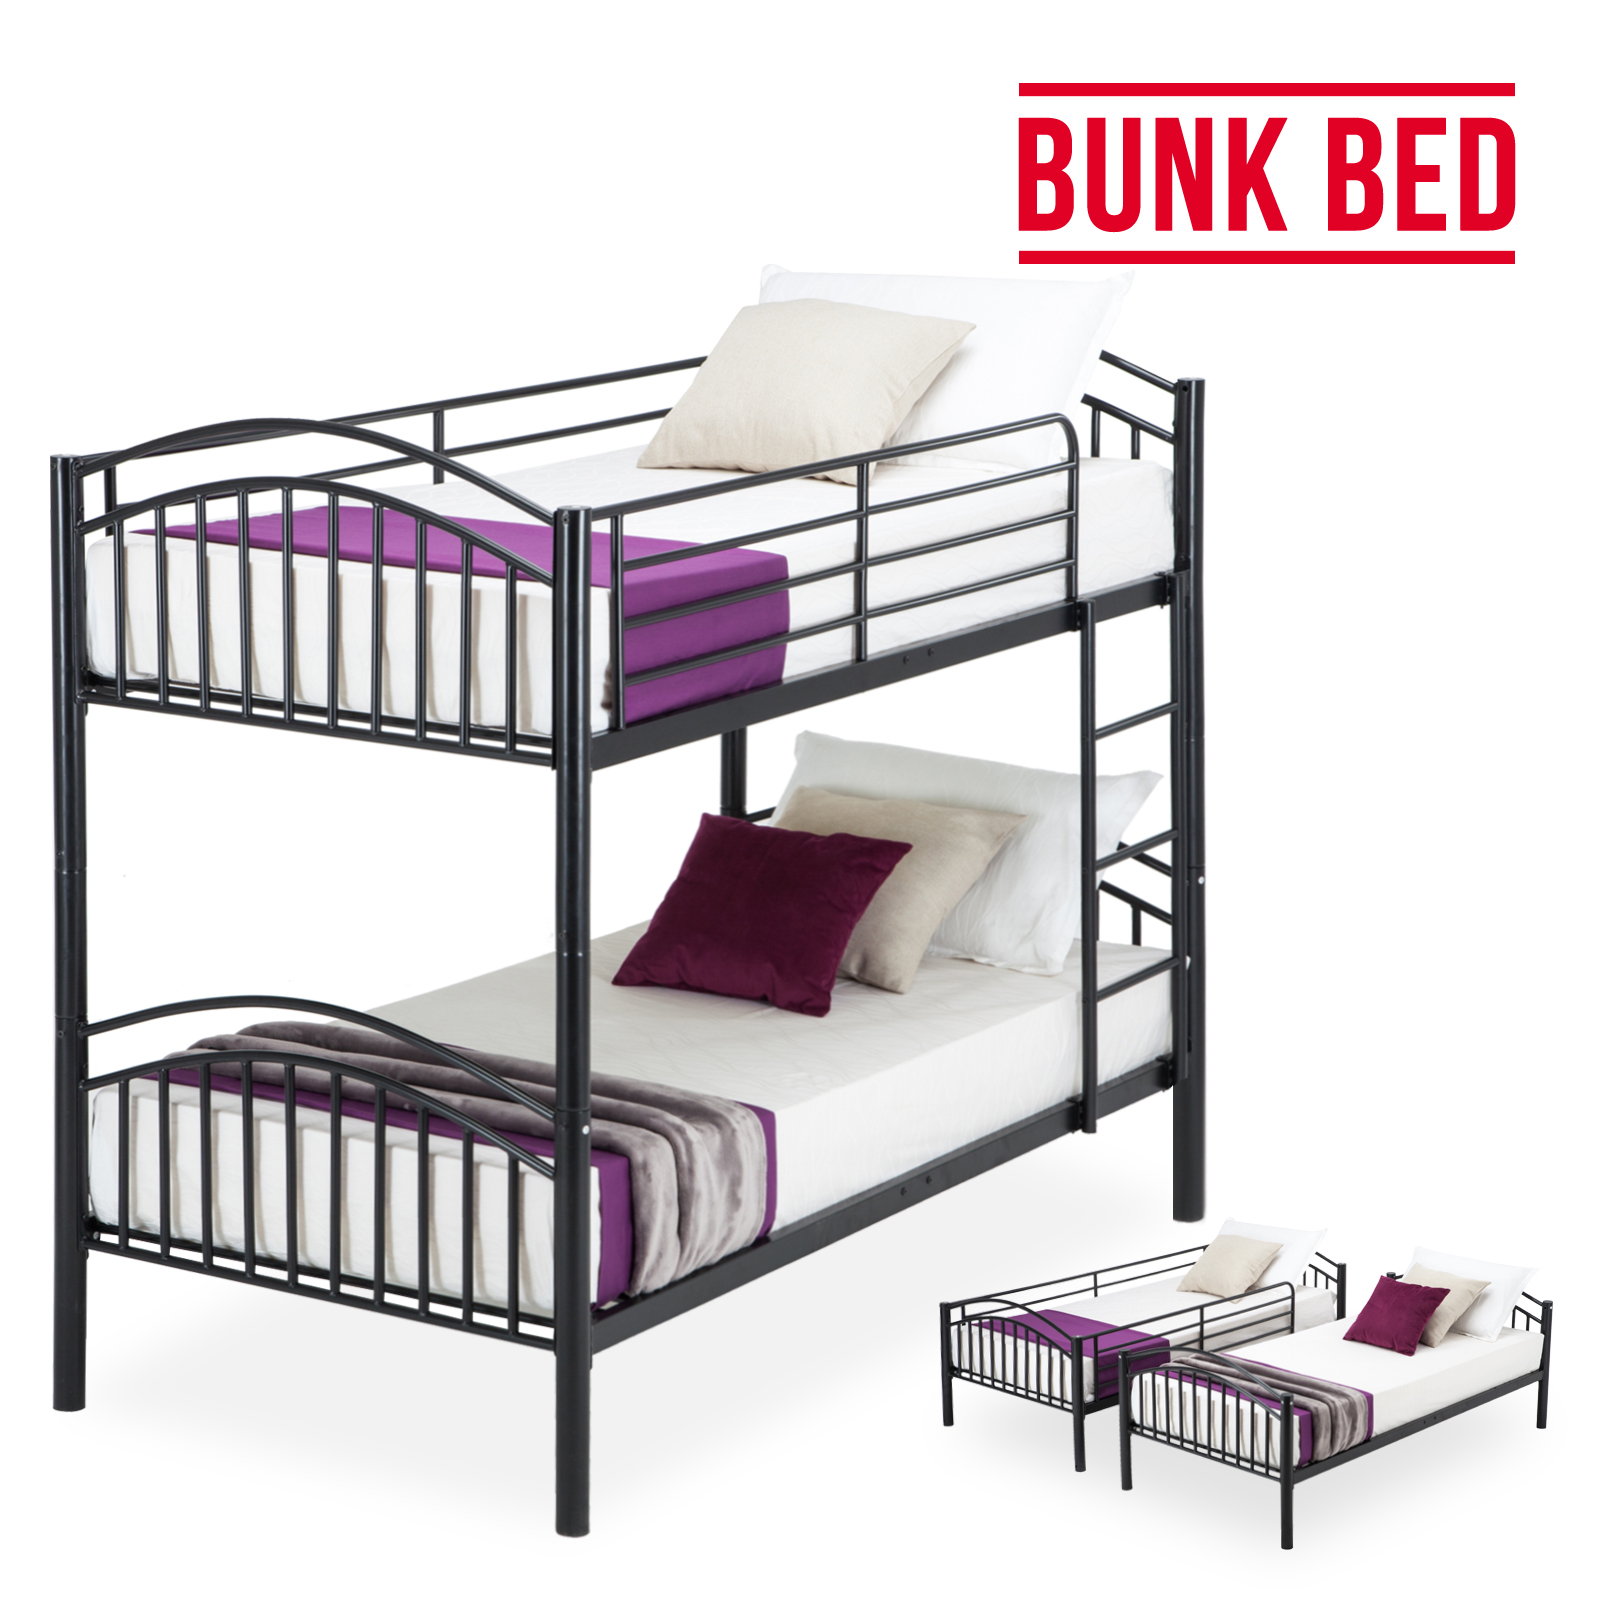 Modern 3ft black single metal bunk bed frame 2 person for for Modern bunk beds for kids